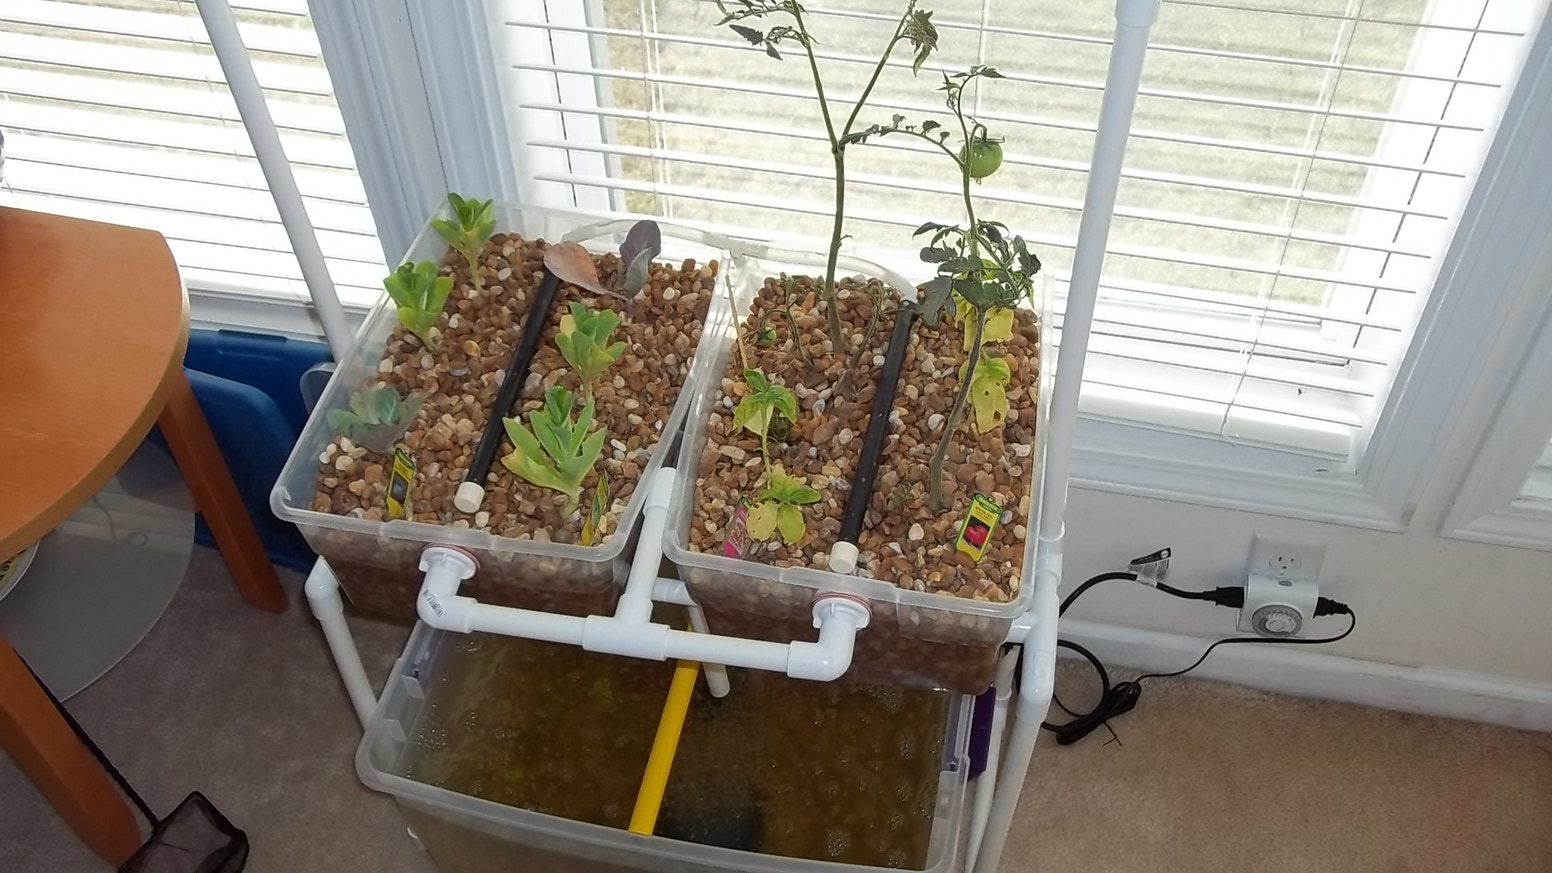 Apartment Indoor Aquaponics System By Renewable Diy Deleted